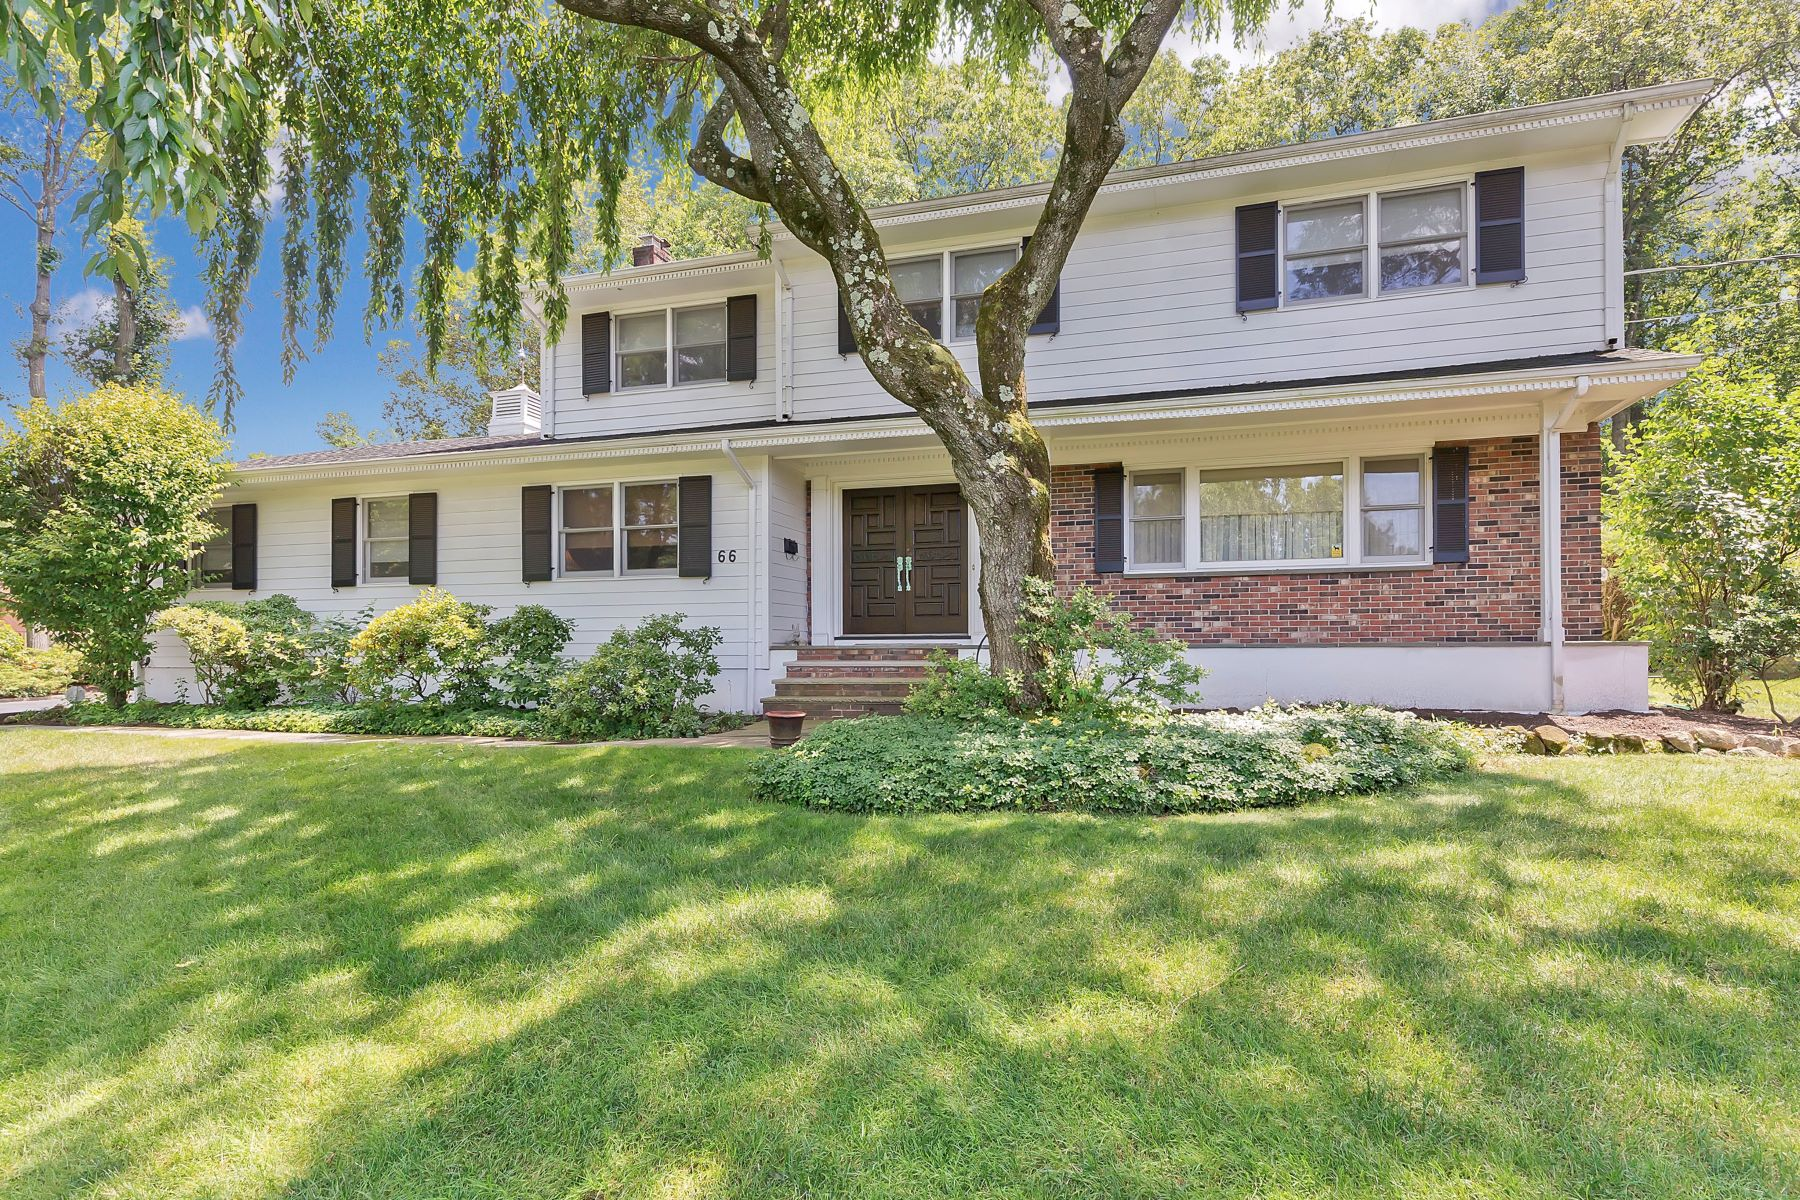 Single Family Homes for Sale at Elegant Spacious Colonial 66 Skylark Road Springfield, New Jersey 07081 United States